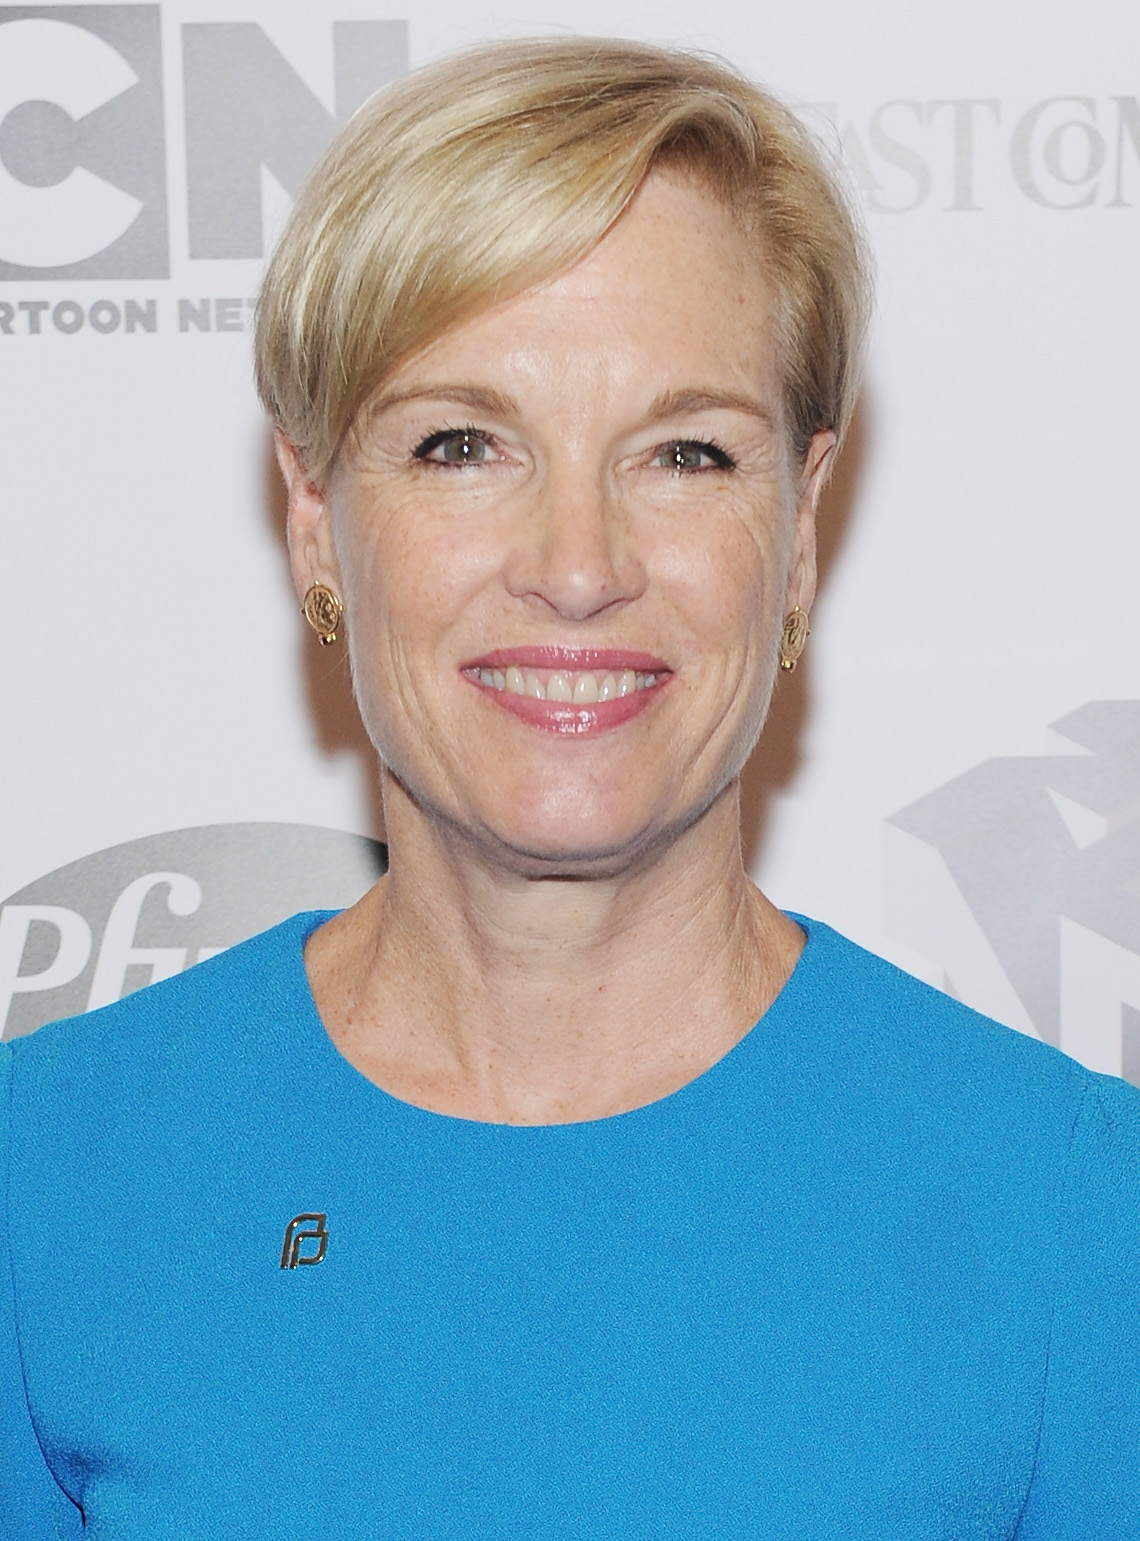 President of Planned Parenthood Cecile Richards attends Andy Cohen and Cecile Richards on Activism, Pop Culture, and Why Authenticity Is The Only Way Forward during the Fast Company Innovation Festival at 92nd Street Y on October 24, 2017 in New York City.